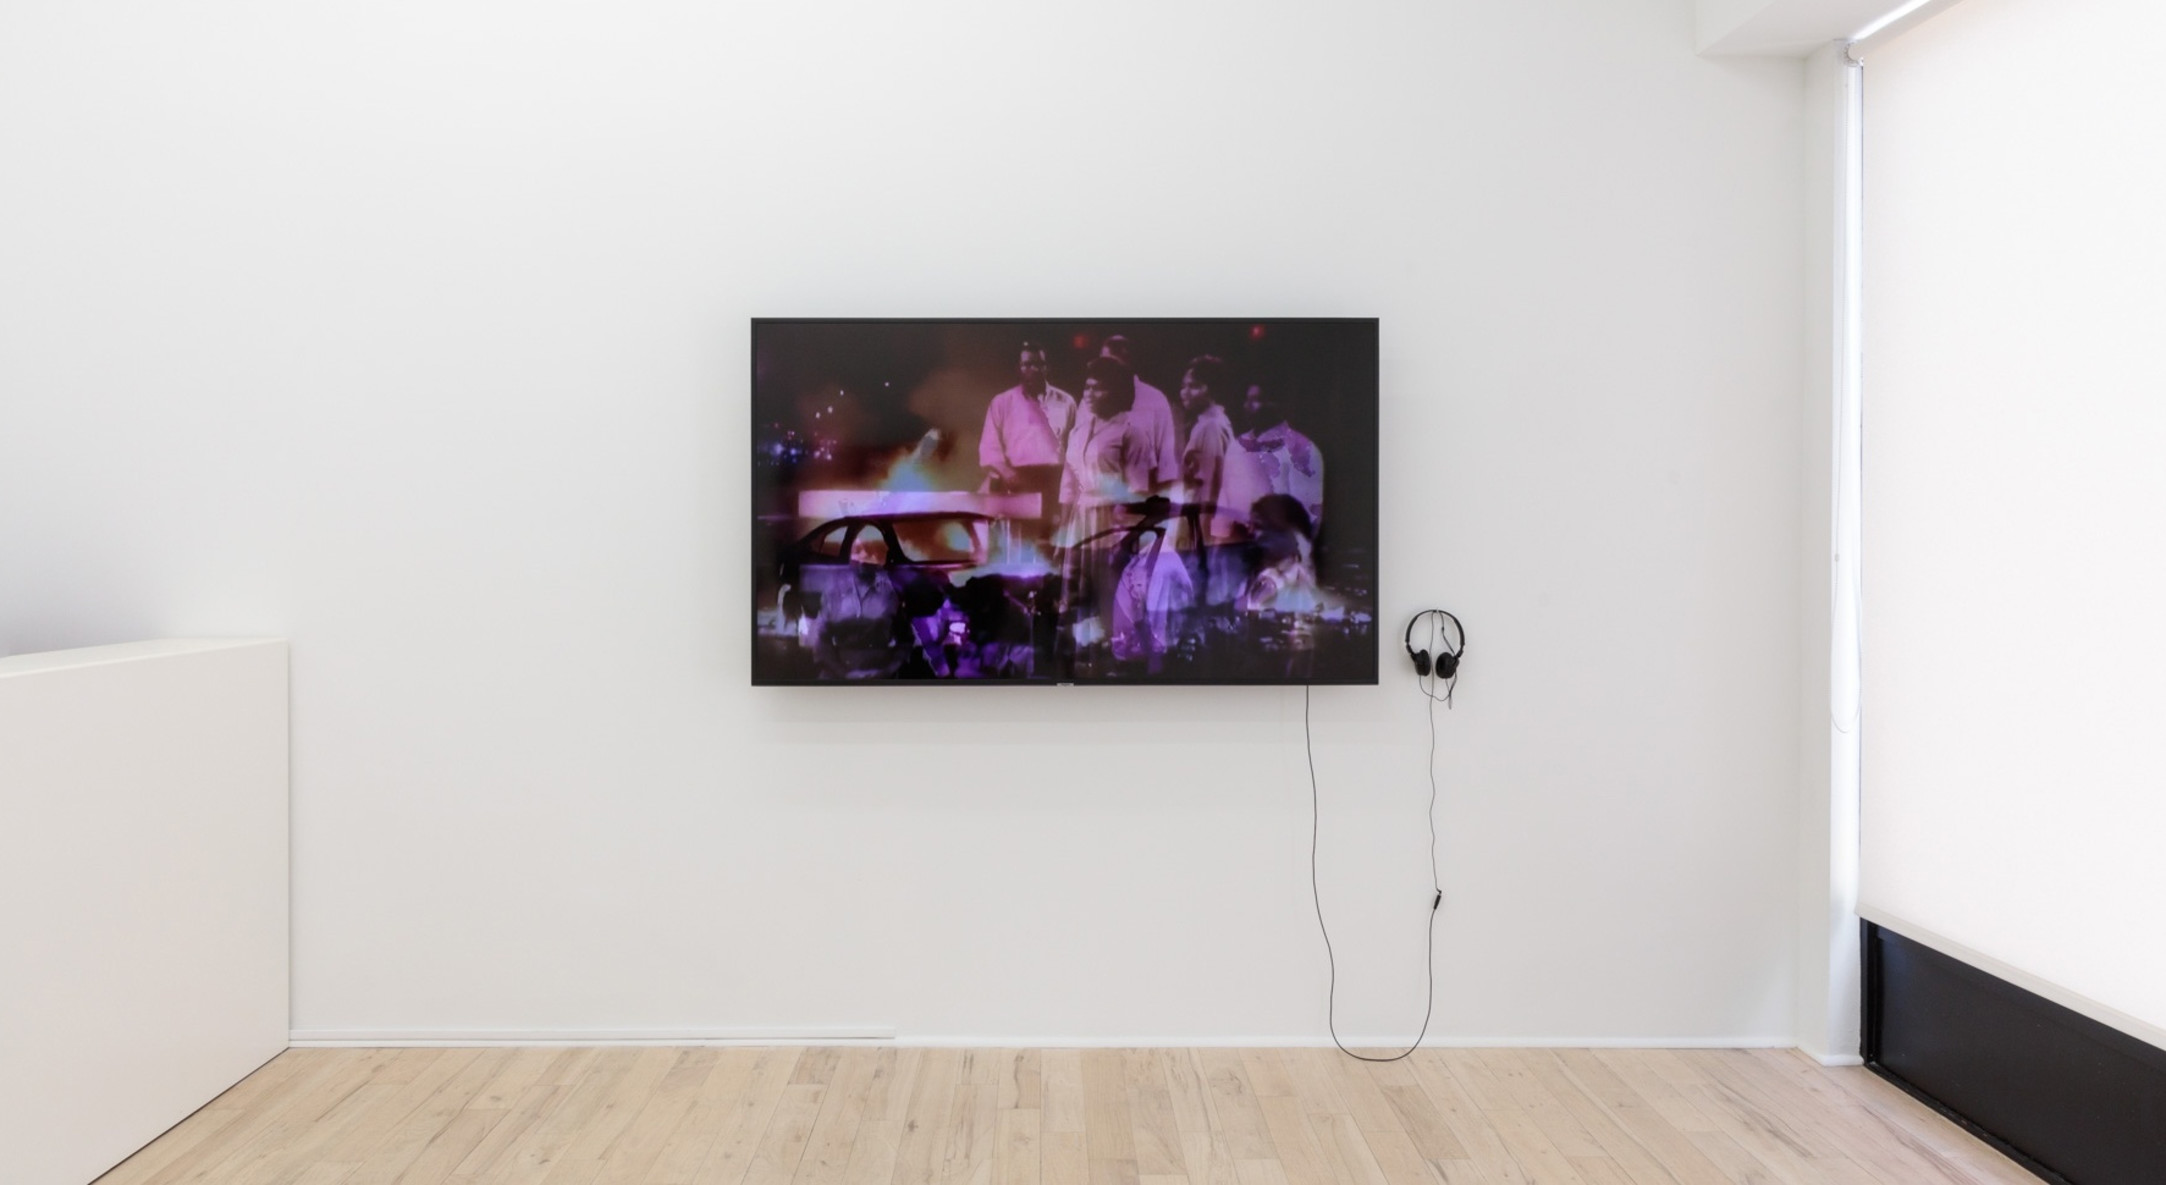 Installation view of How Does This Make You Feel?, Ja'Tovia Gary, Shigeko Kubota, Hunter Reynolds, Erica Scourti, at Hales Project Room, New York